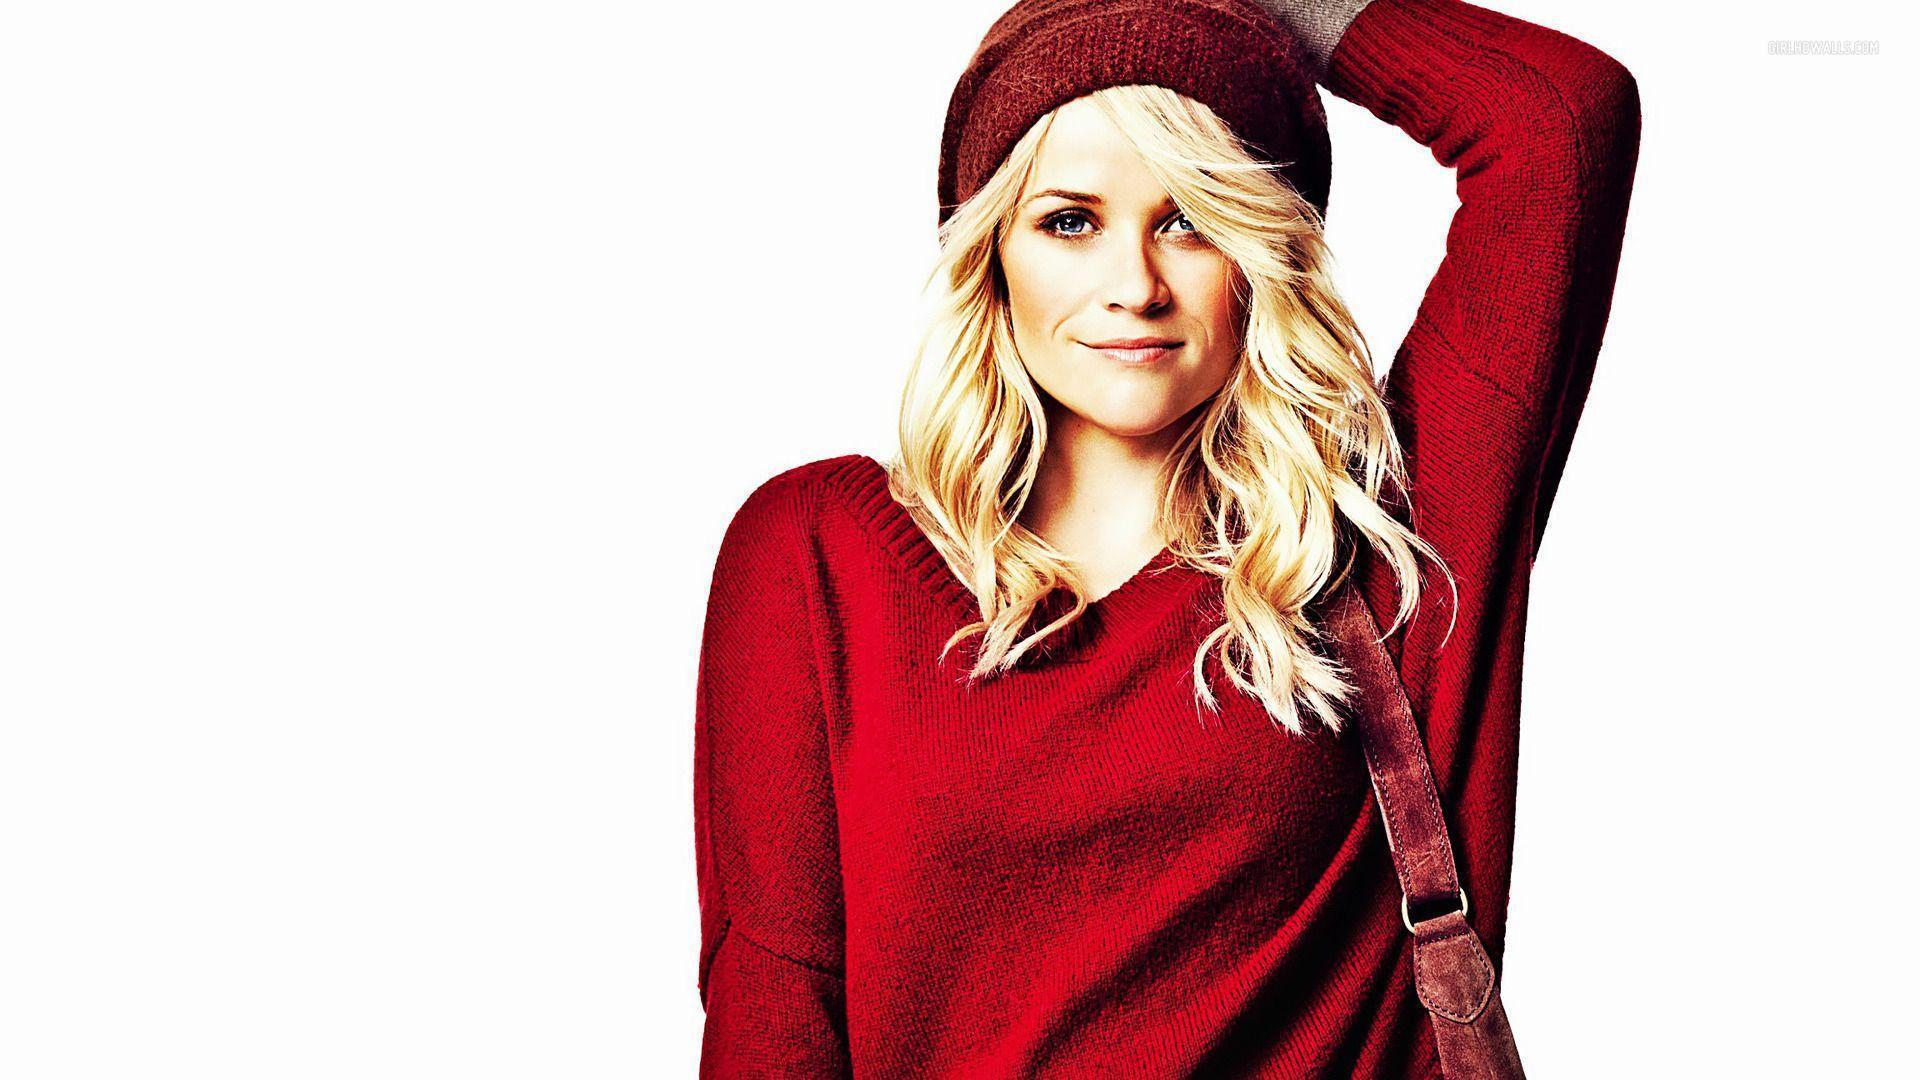 Reese Witherspoon Wallpapers High Resolution and Quality ...